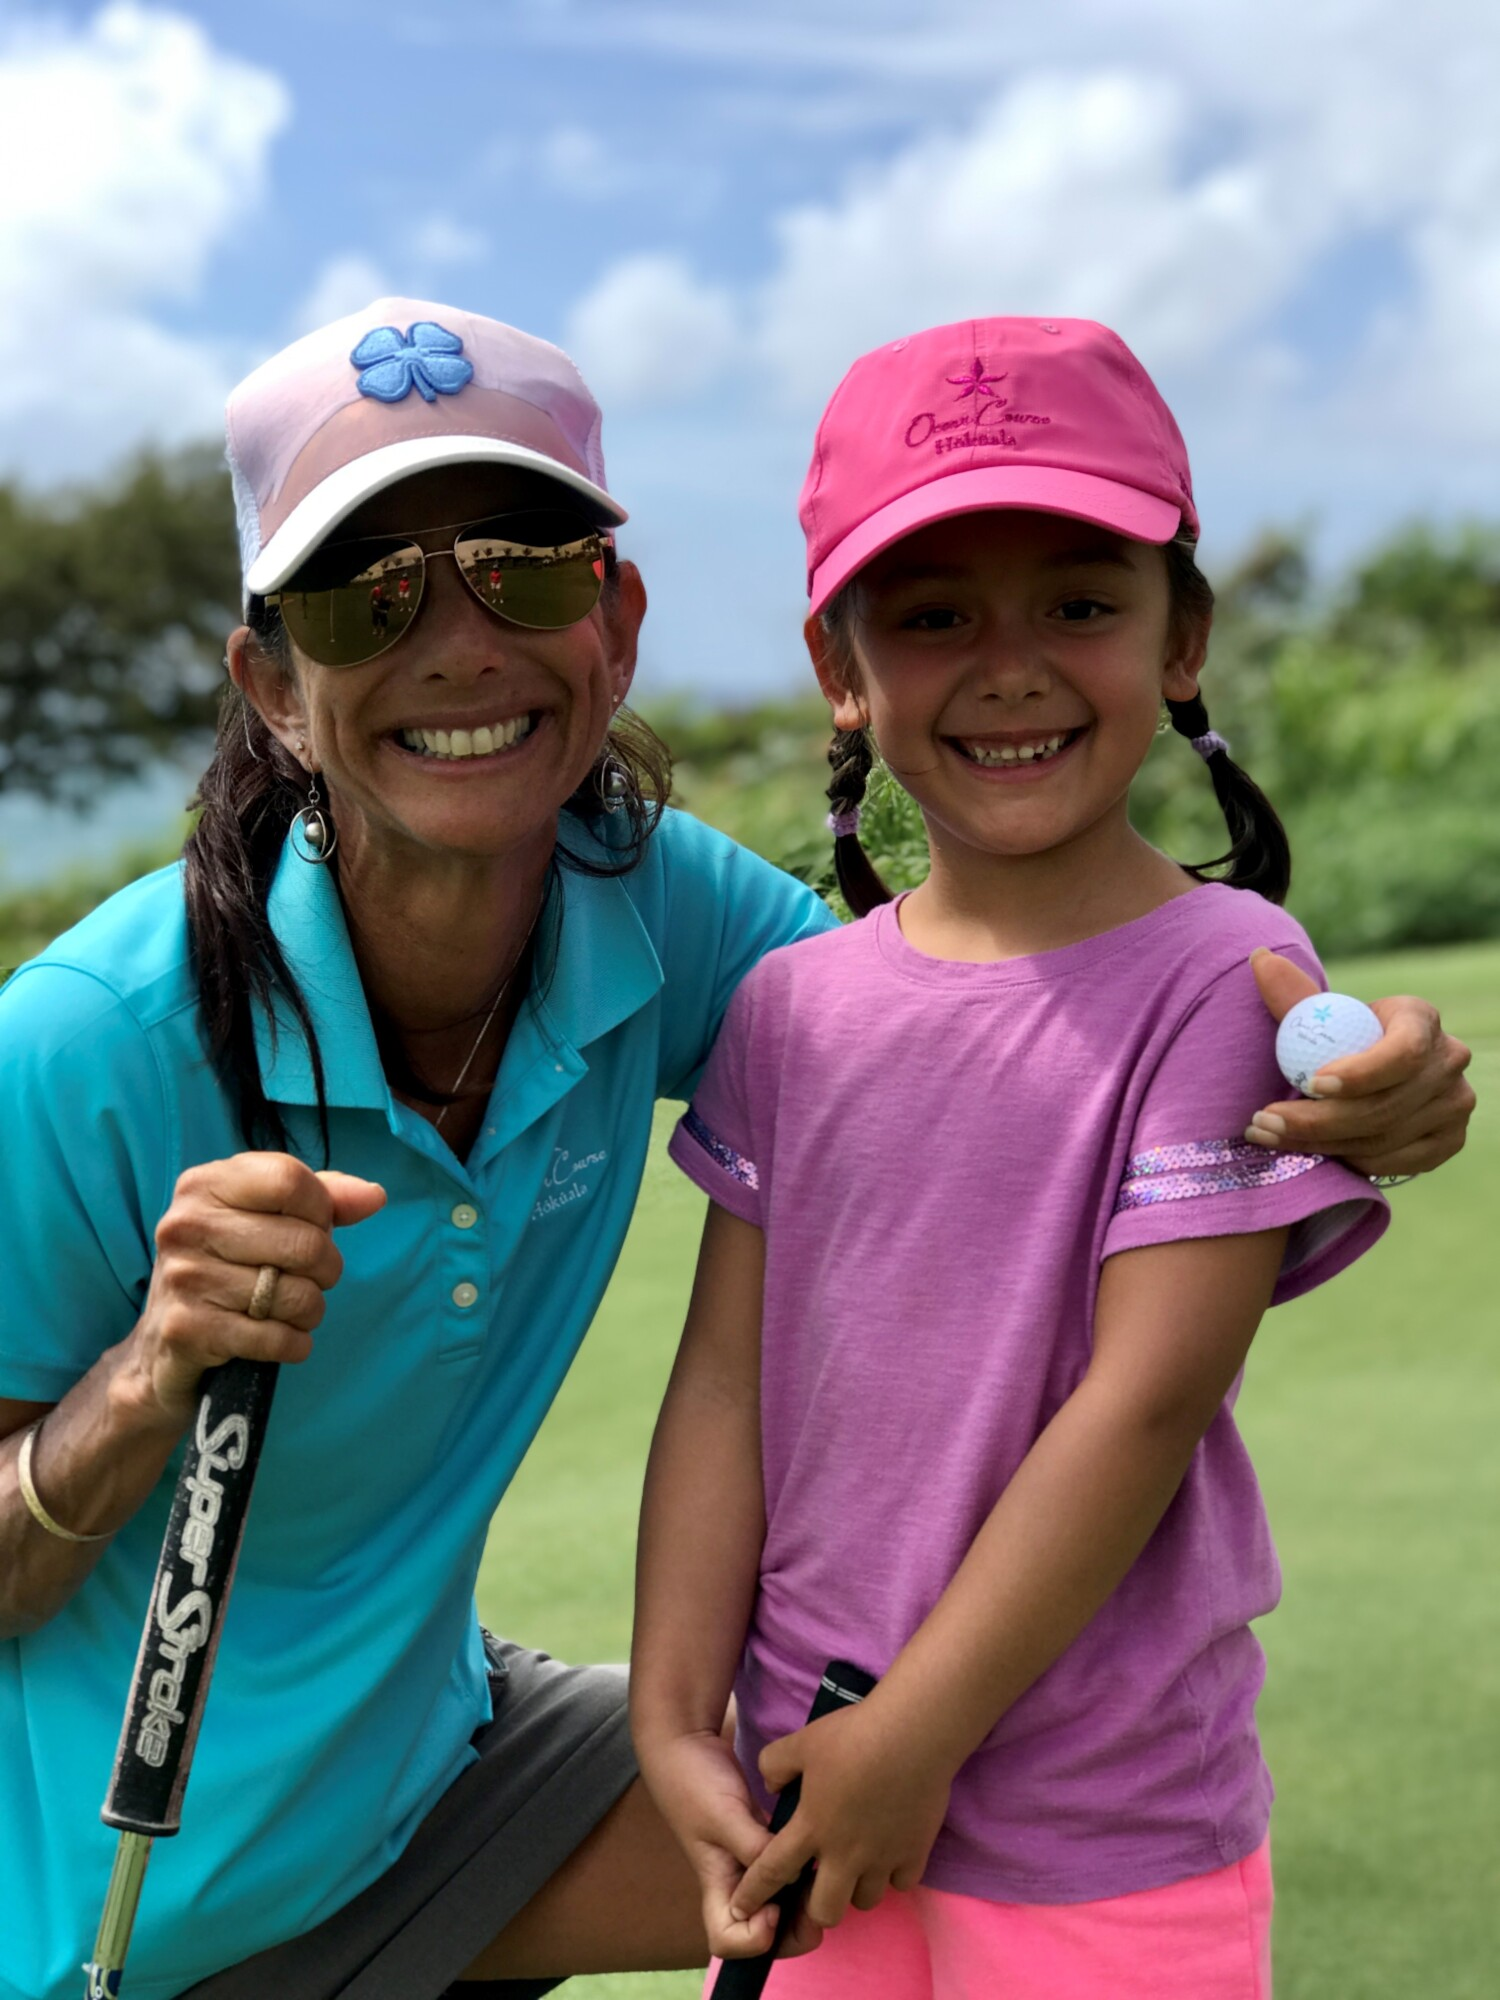 Kellie Hines PGA Director of Community Relations and Instruction at Ocean Course Hokuala